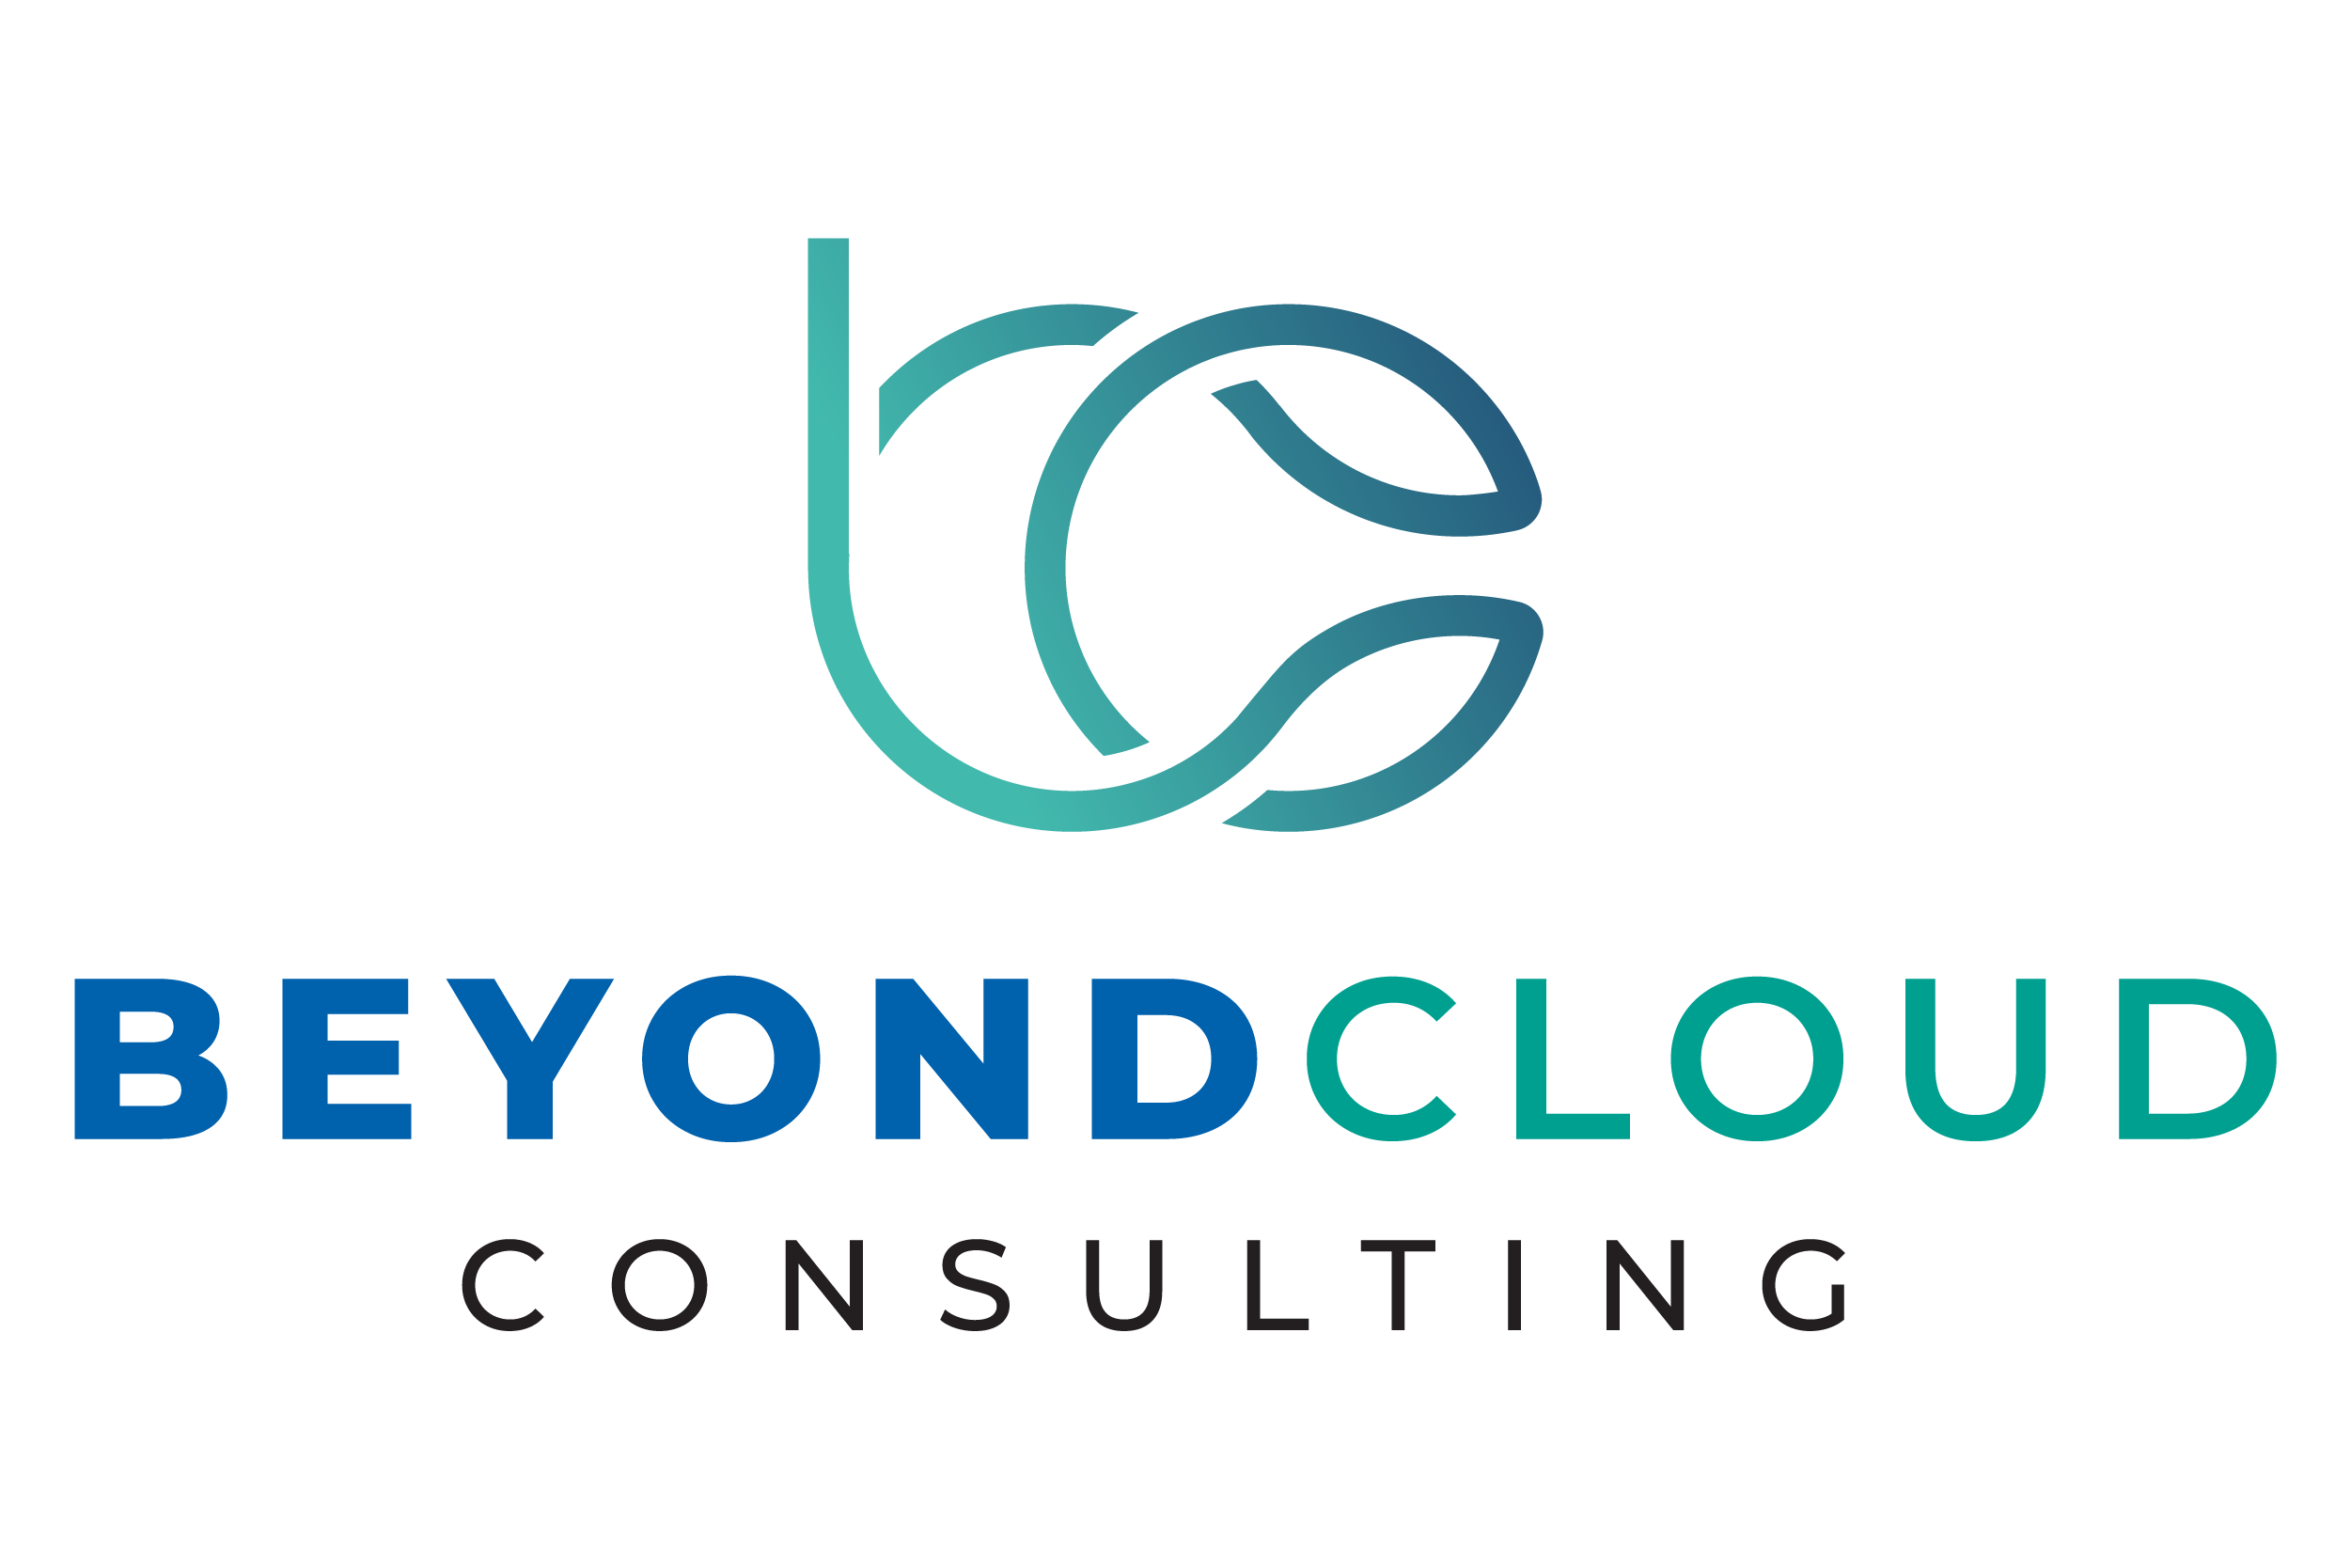 Beyond Cloud Consulting Inc. logo